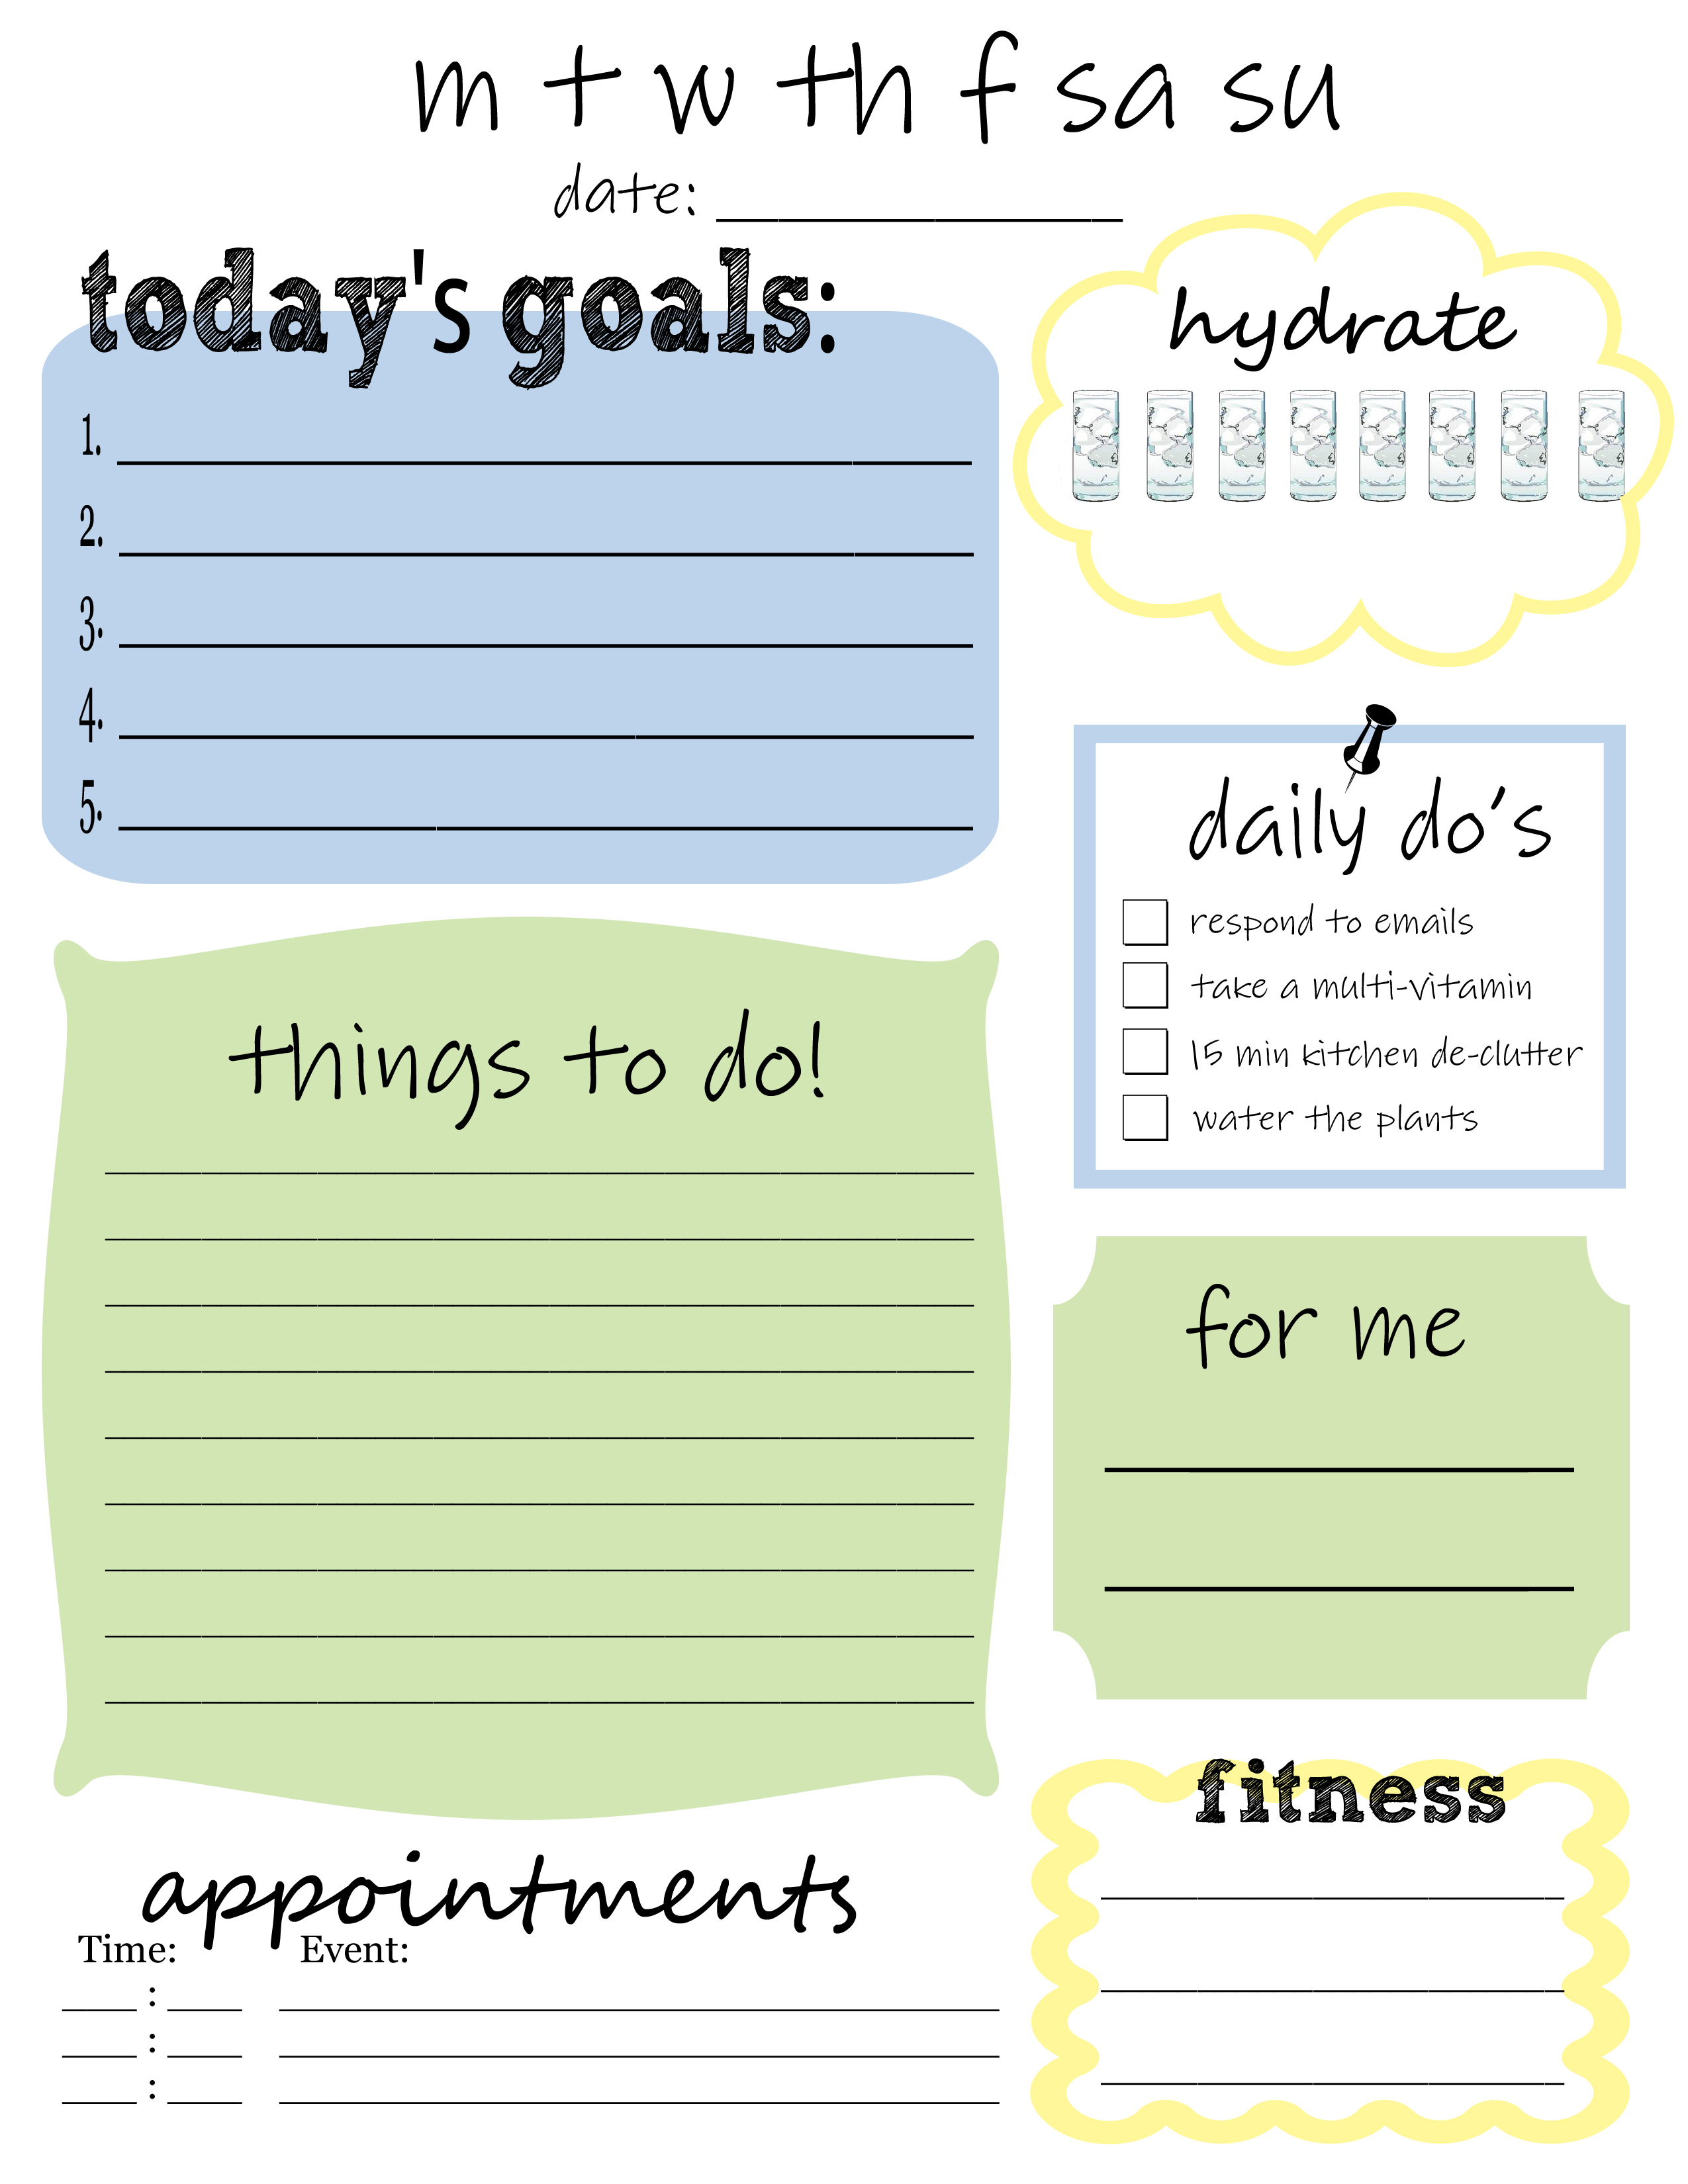 8 Best Images of Printable Daily Planner To Do List ...